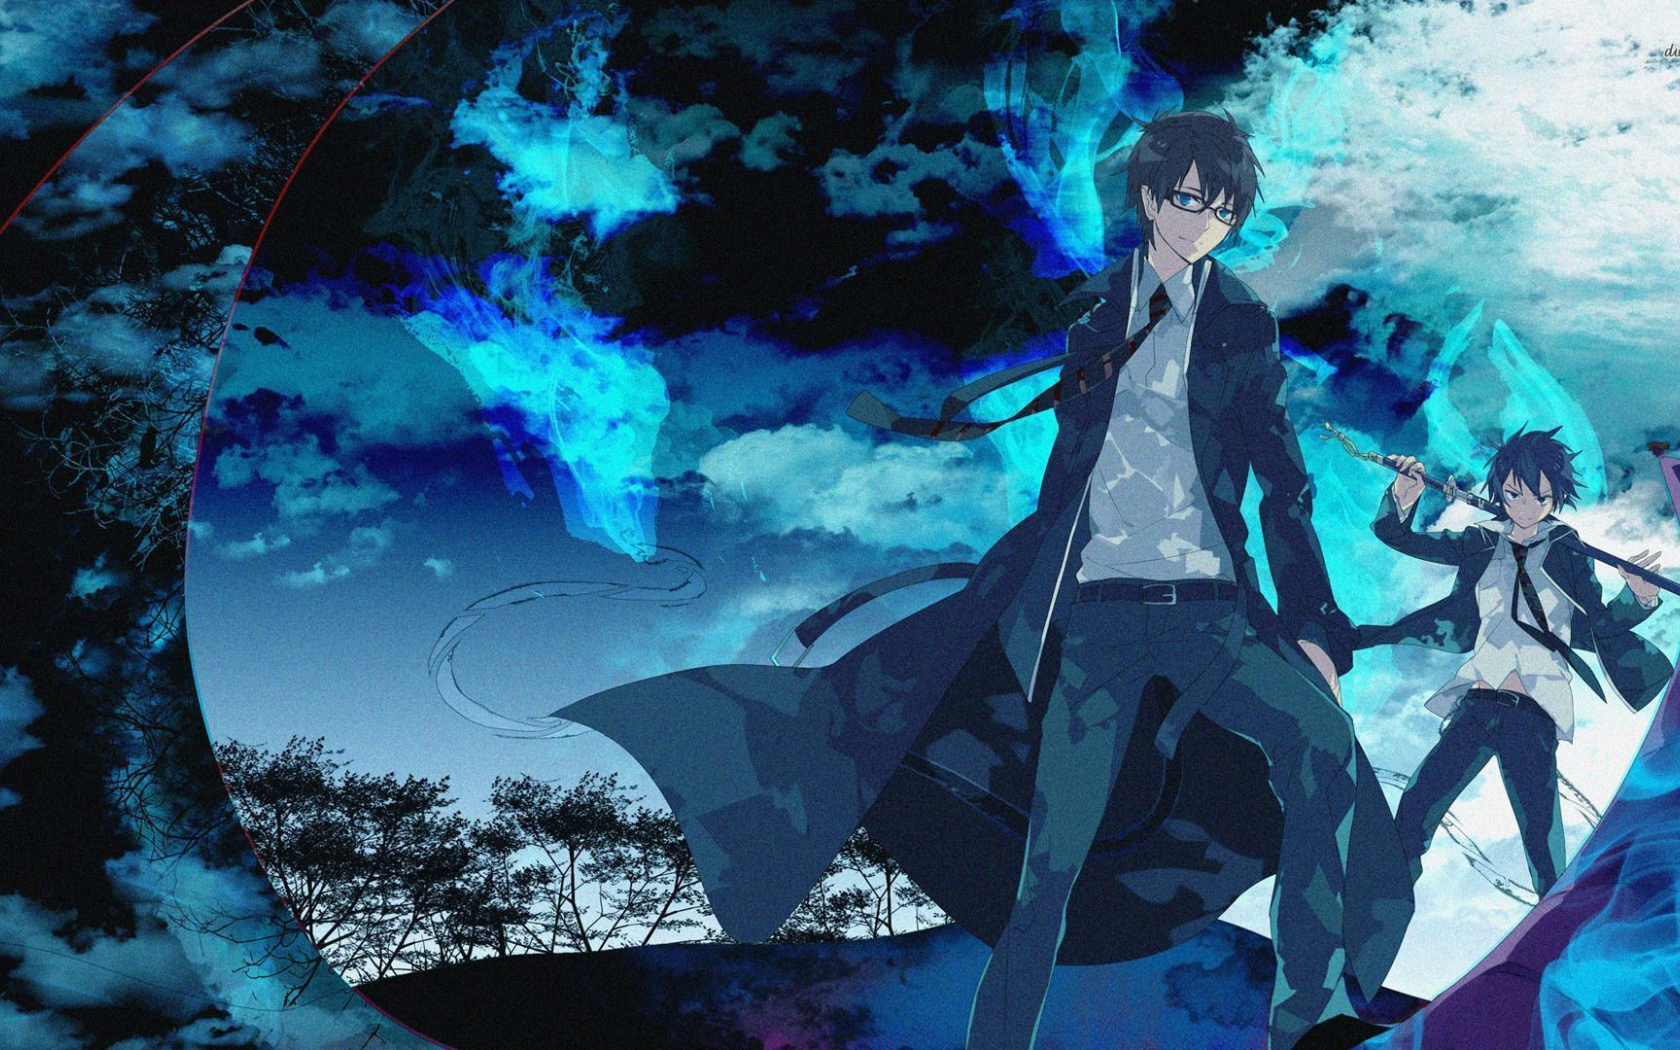 Free Download Blue Anime Wallpapers Hd Wallpapers Backgrounds Of